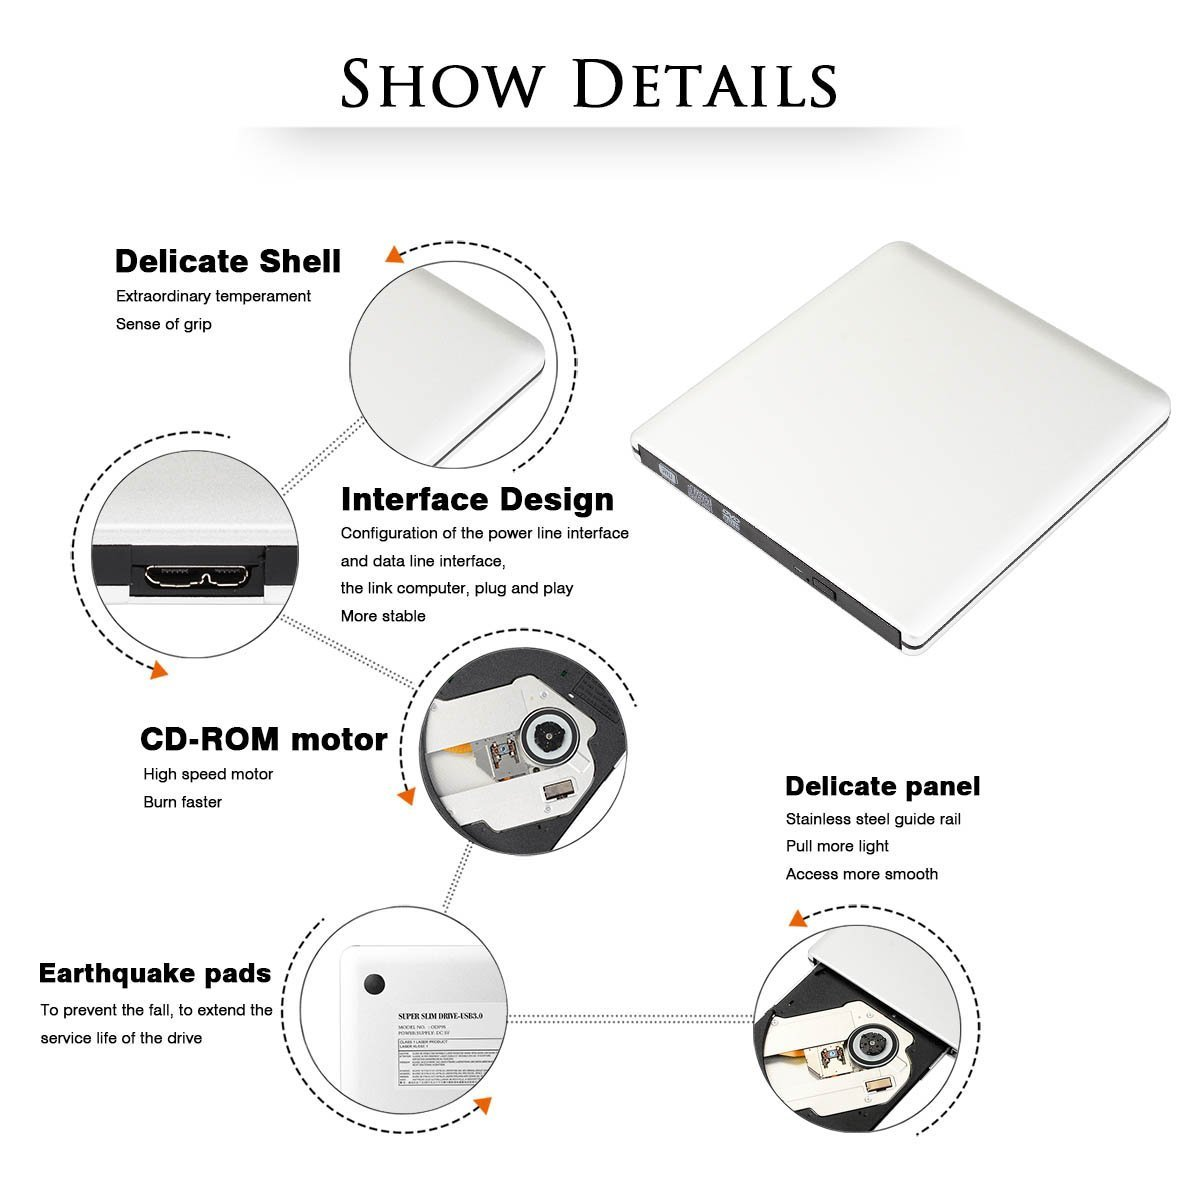 External Cd Dvd Drive Blingco Usb30 Ultra Slim Schematic Of Current Power Supply For Double Laser From Dvdrw Burner Portable Rewriter Burnerexternal Optical Rw Superdrive